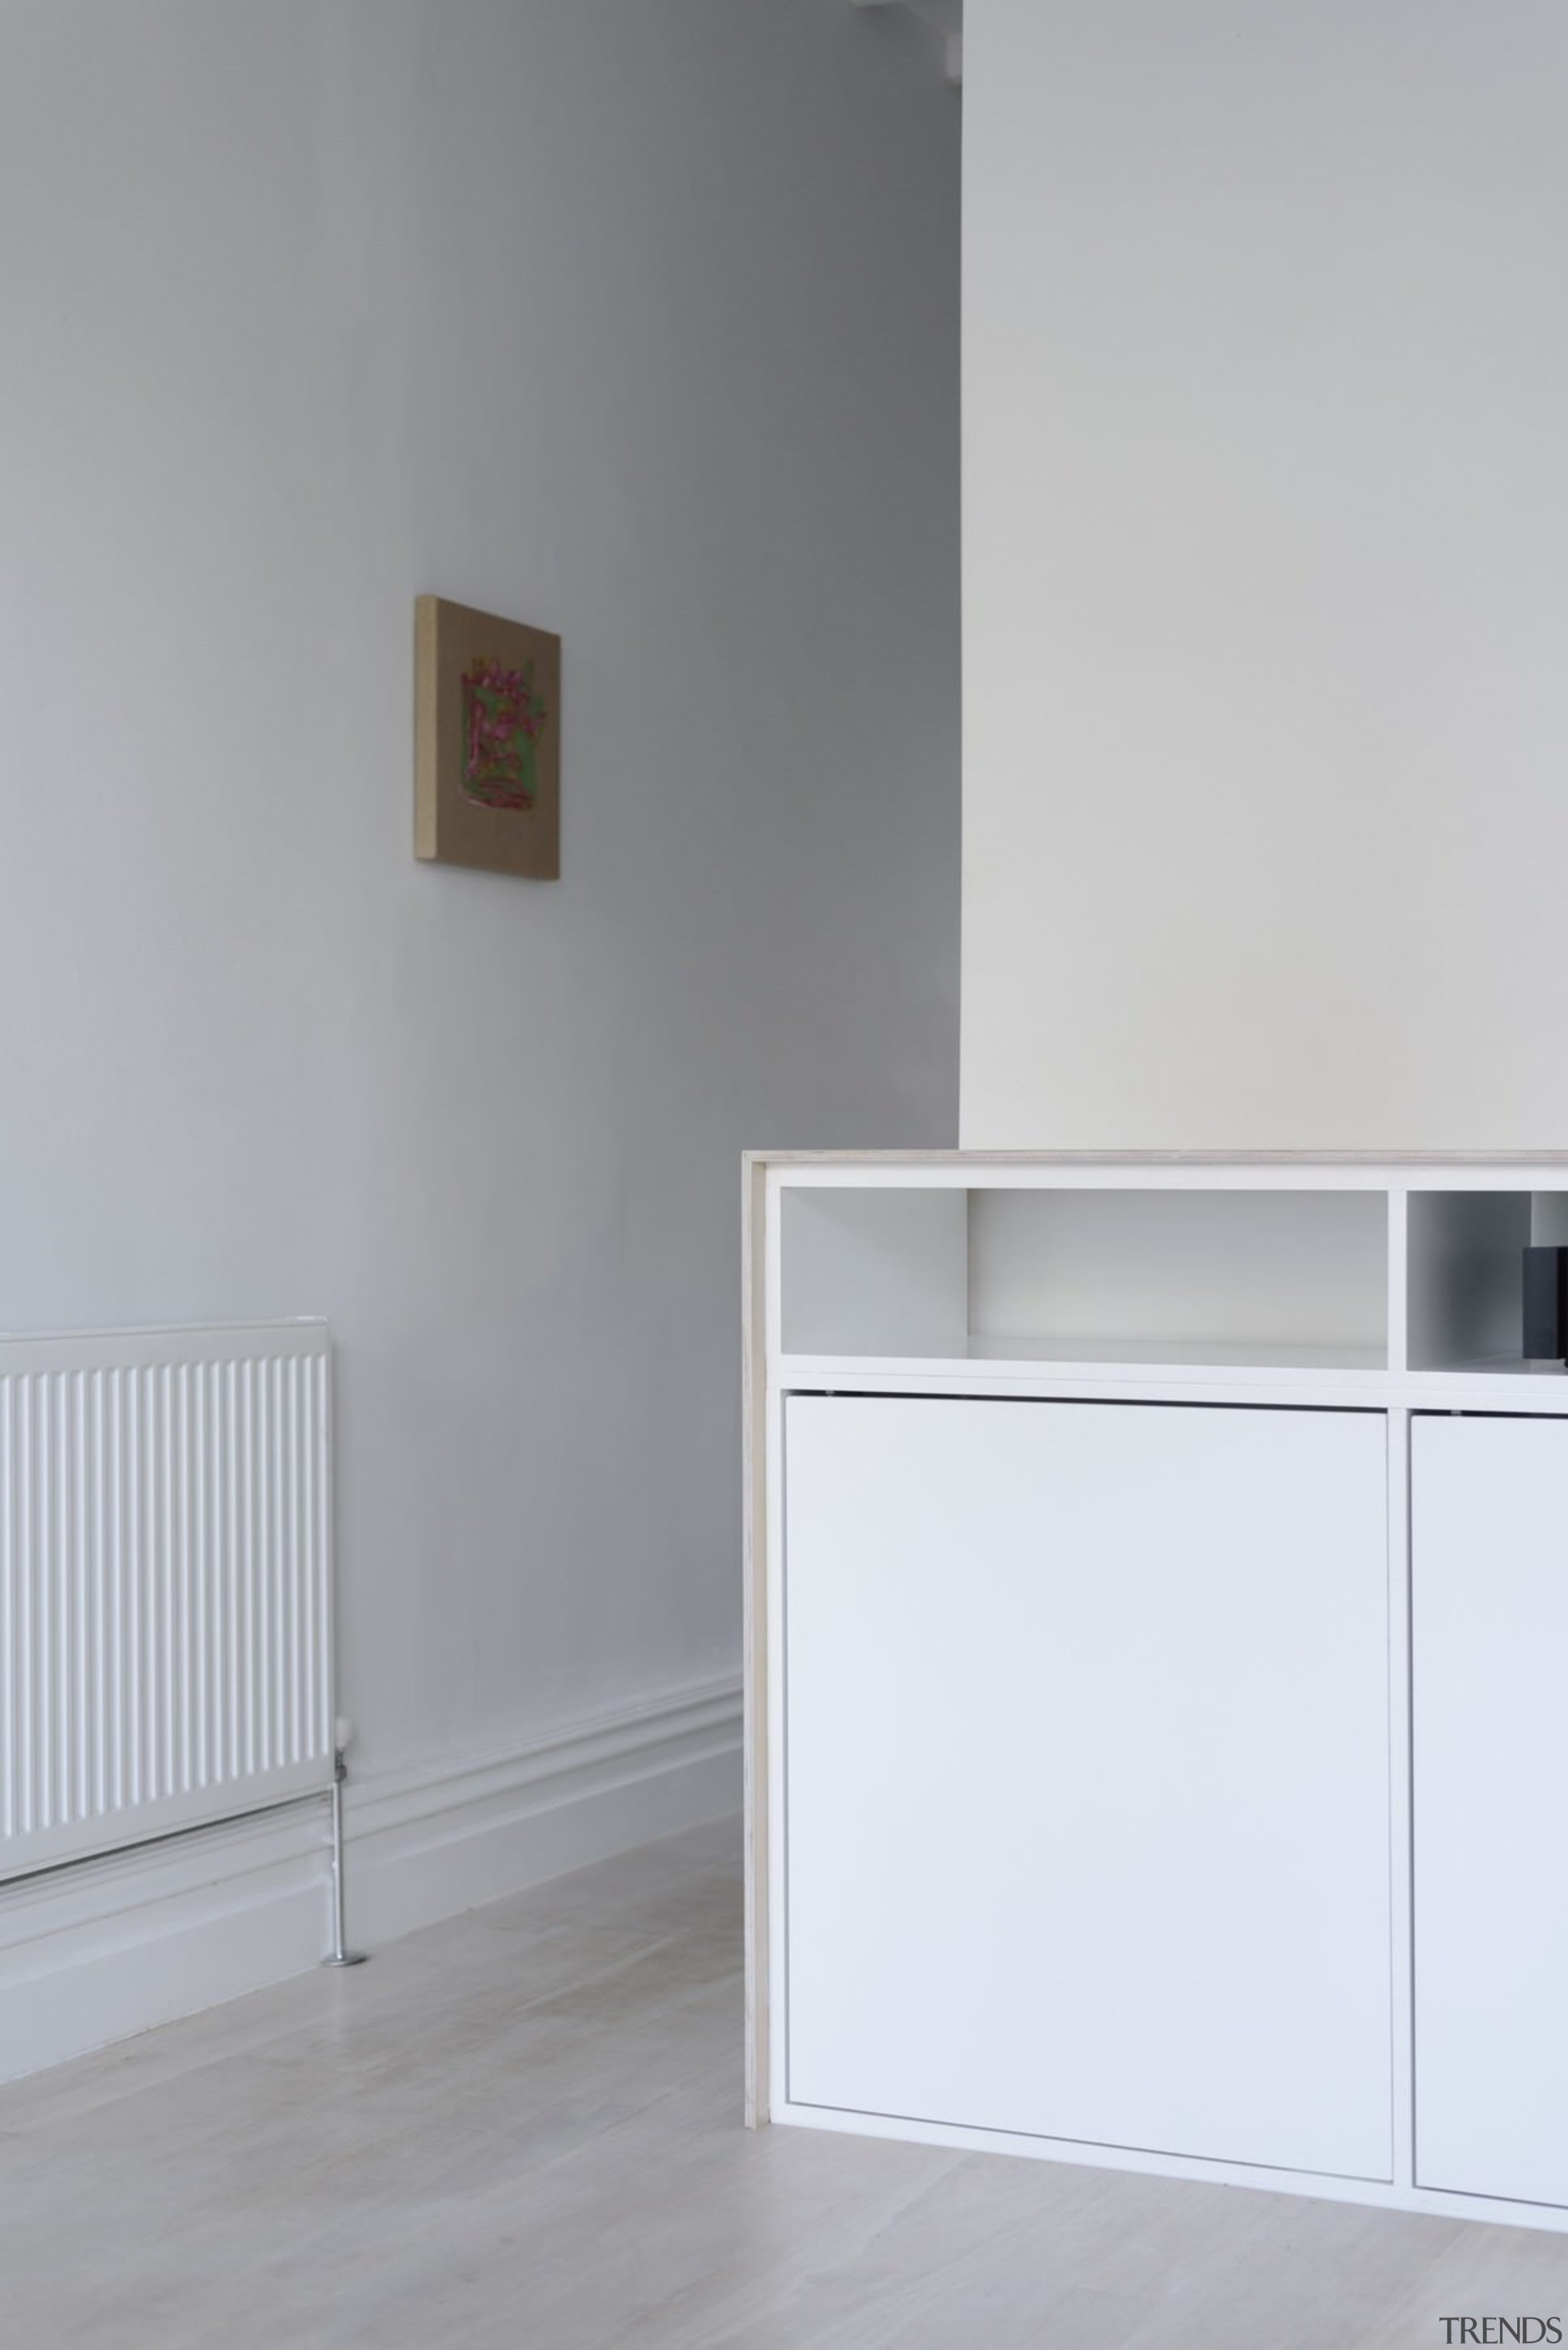 A view of the wall heater - A chest of drawers, floor, furniture, product, product design, sideboard, wall, gray